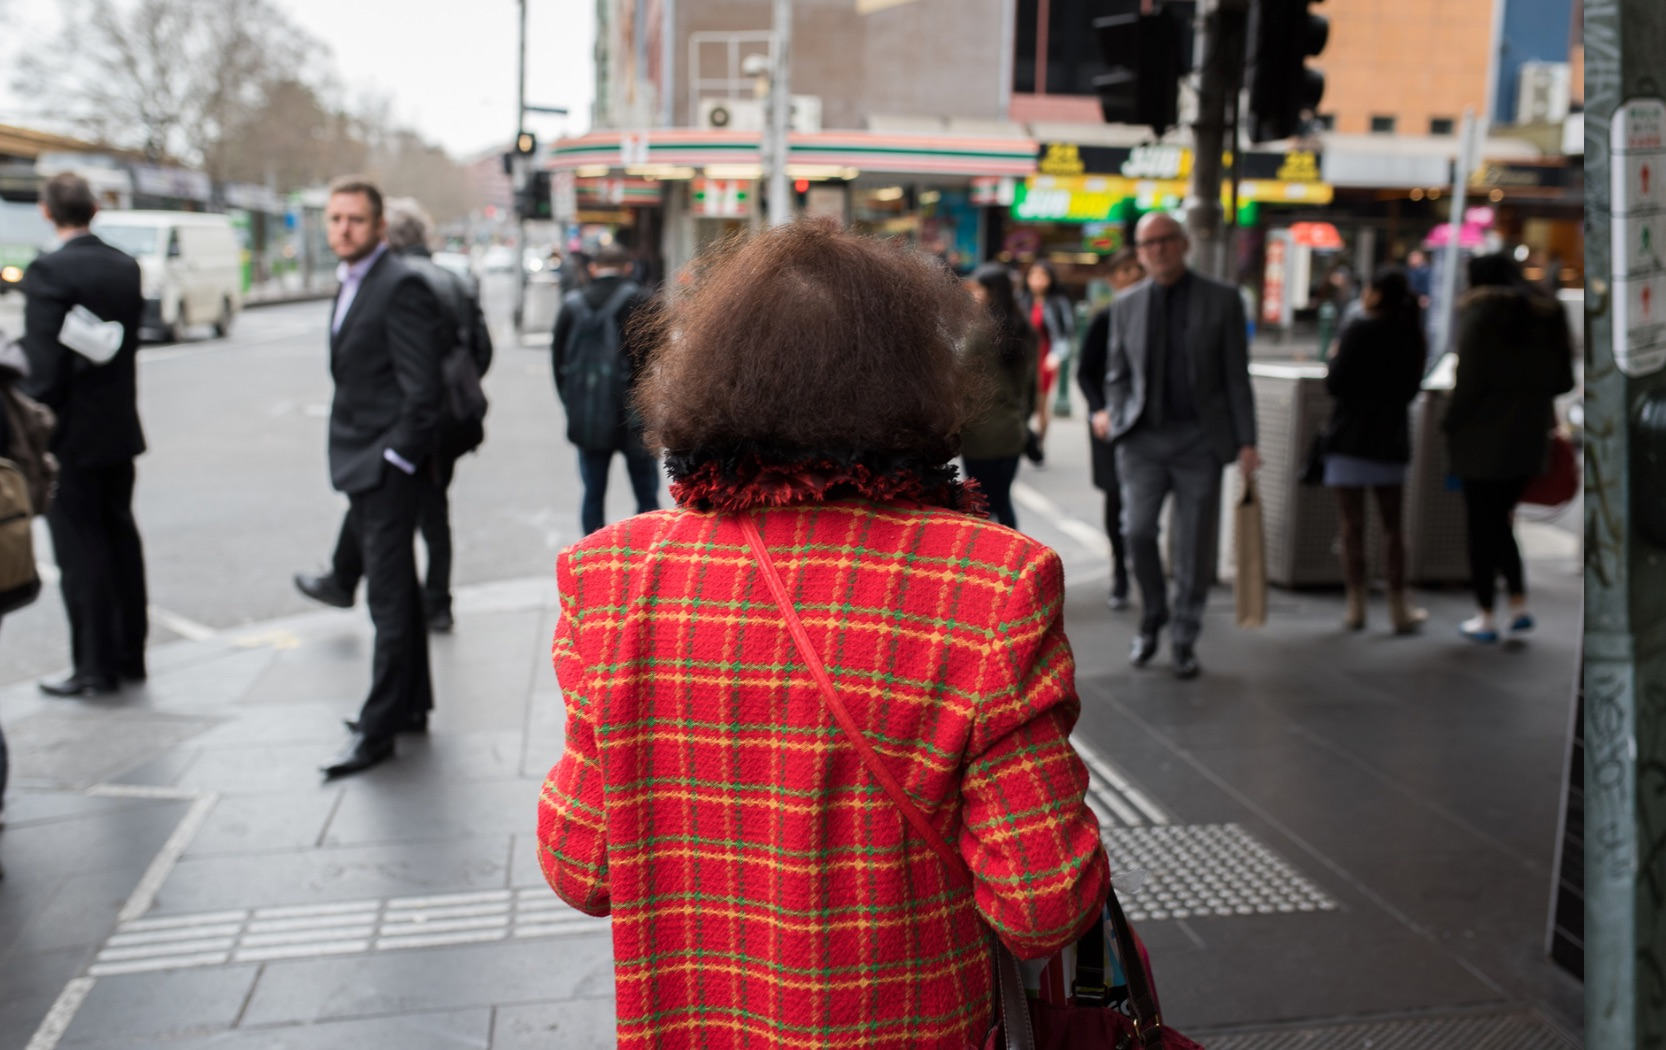 Danny_Tucker_Photography_-_Streets_of_Melbourne+2.jpg